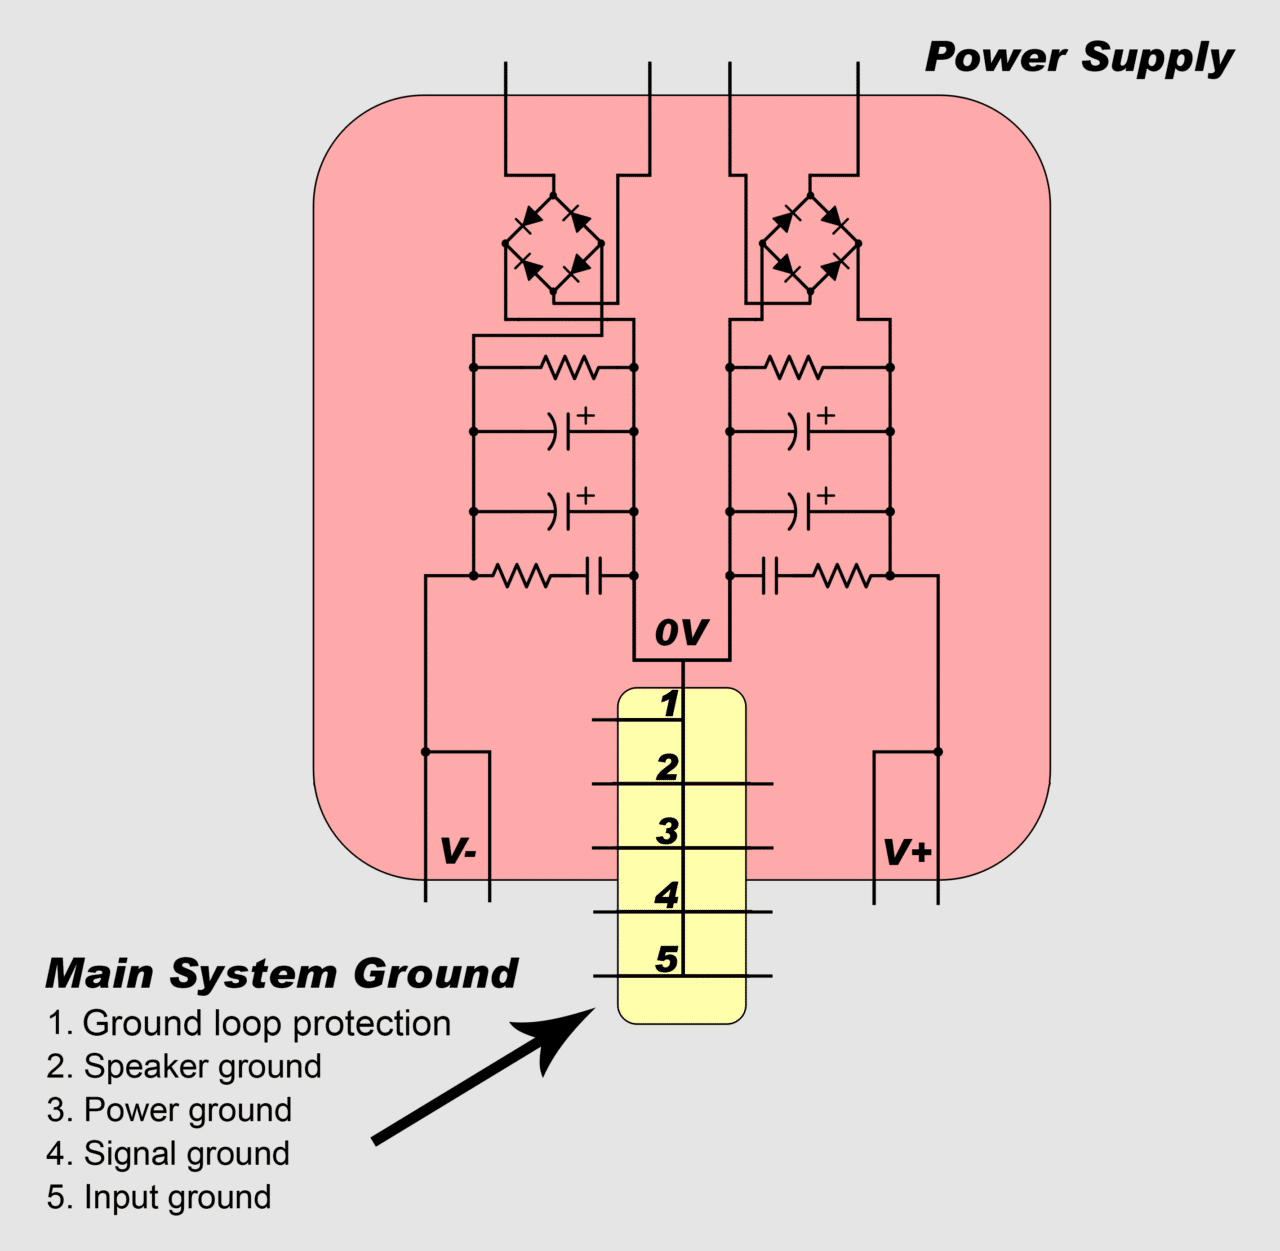 A Complete Guide To Design And Build Hi Fi Lm3886 Amplifier Example Ac Transistor Circuit Analysis Of The Mid Frequency Response Main System Ground So That Higher Current Grounds Are Closer Reservoir Capacitors Diagram Below Shows How Order Connections